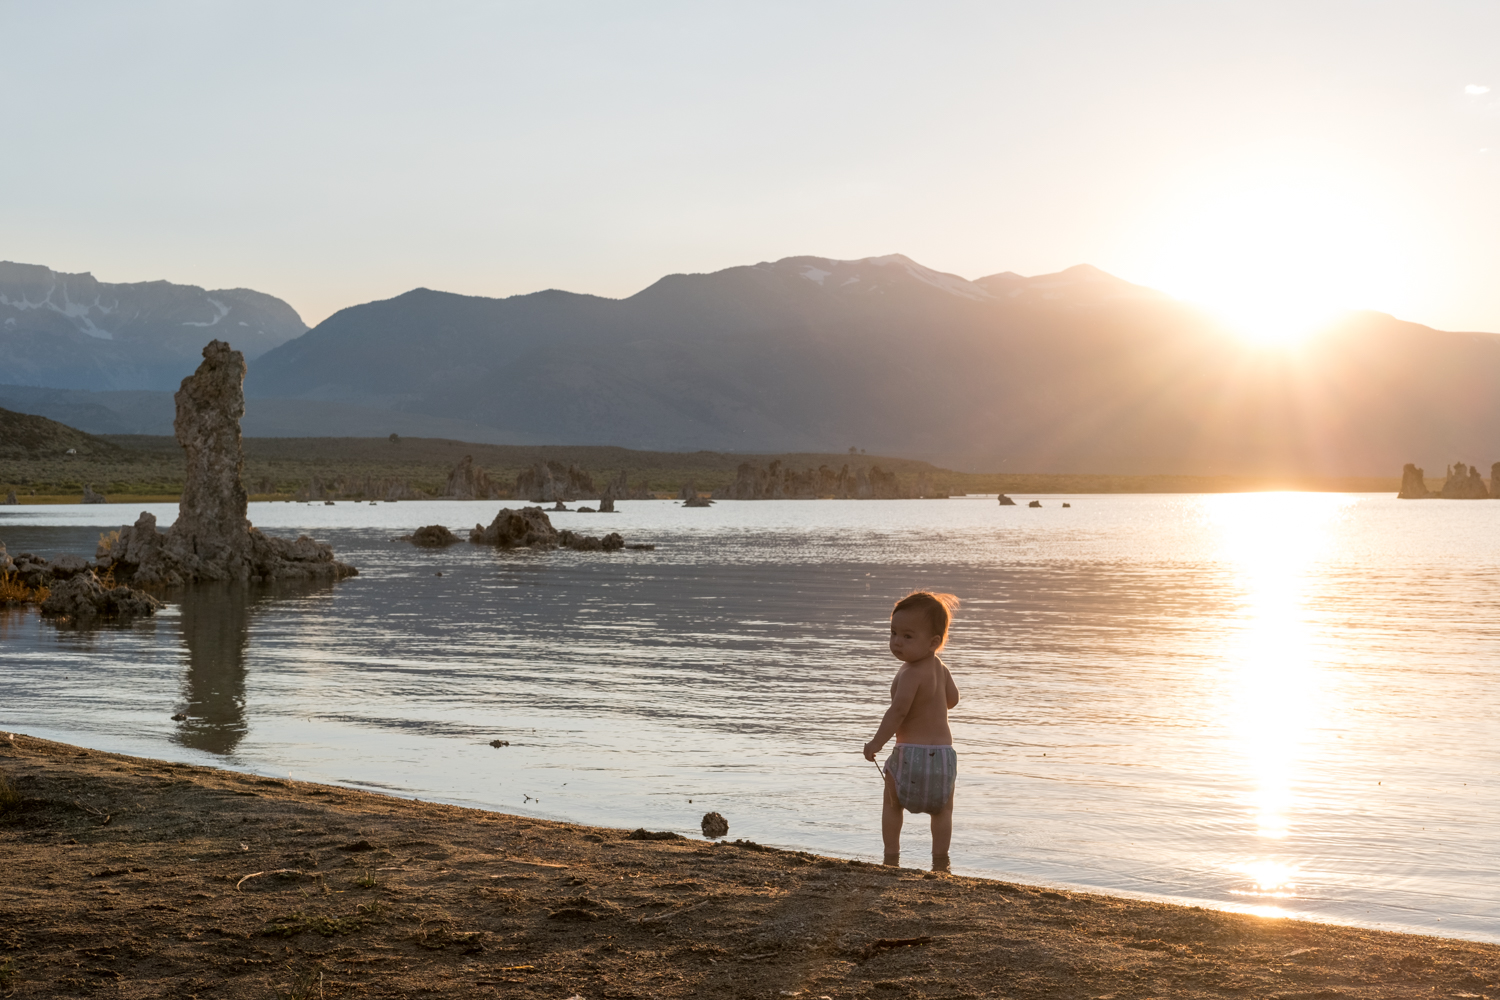 A young nature lover plays on the bank of Mono Lake at sunset.